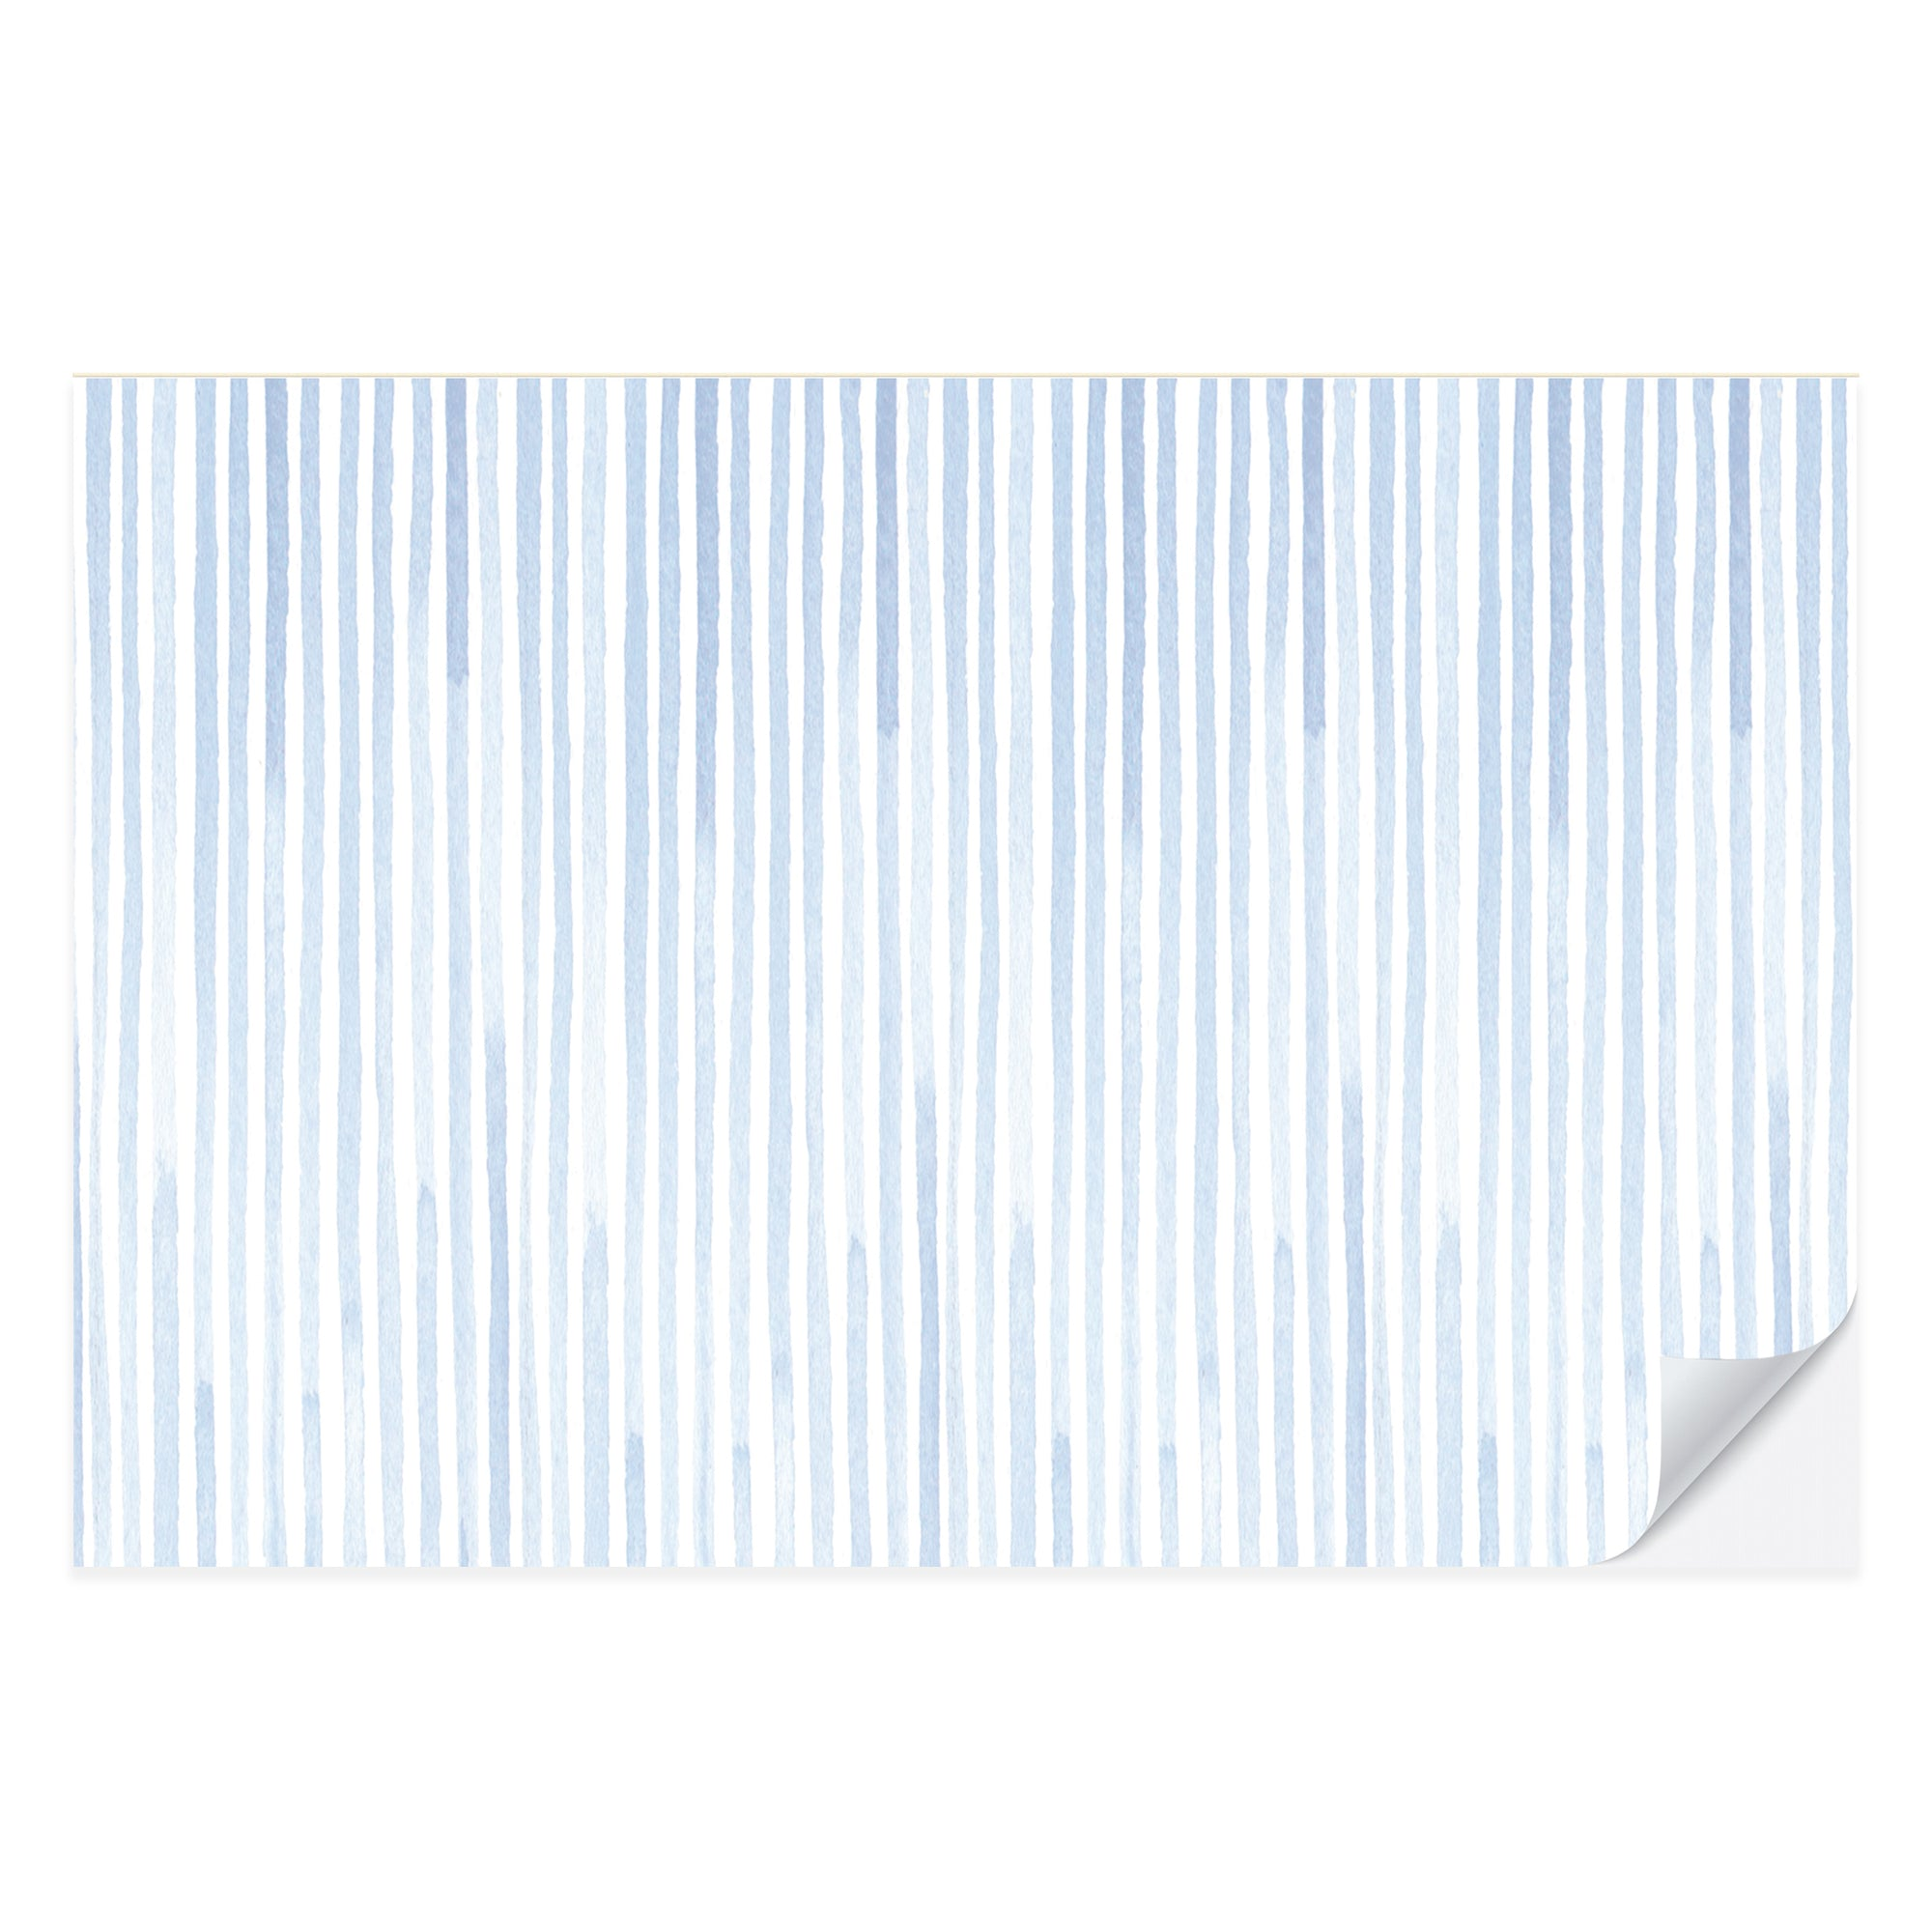 Blue Seersucker Placemat Pad